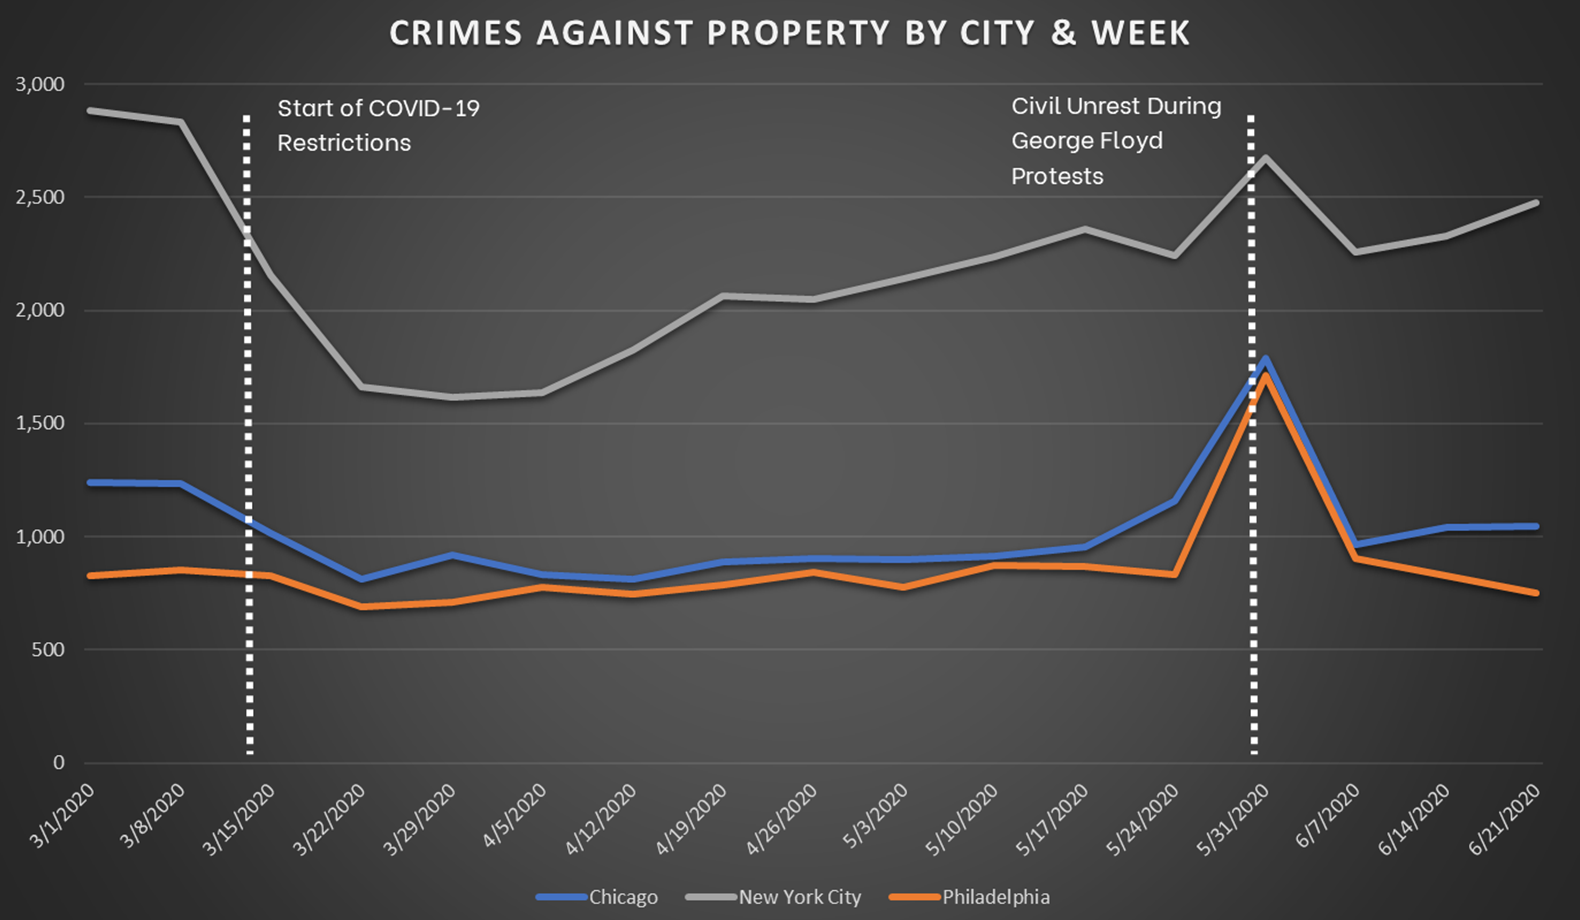 Crimes Against Property by City and Week for Chicago, NYC, and Philadelphia